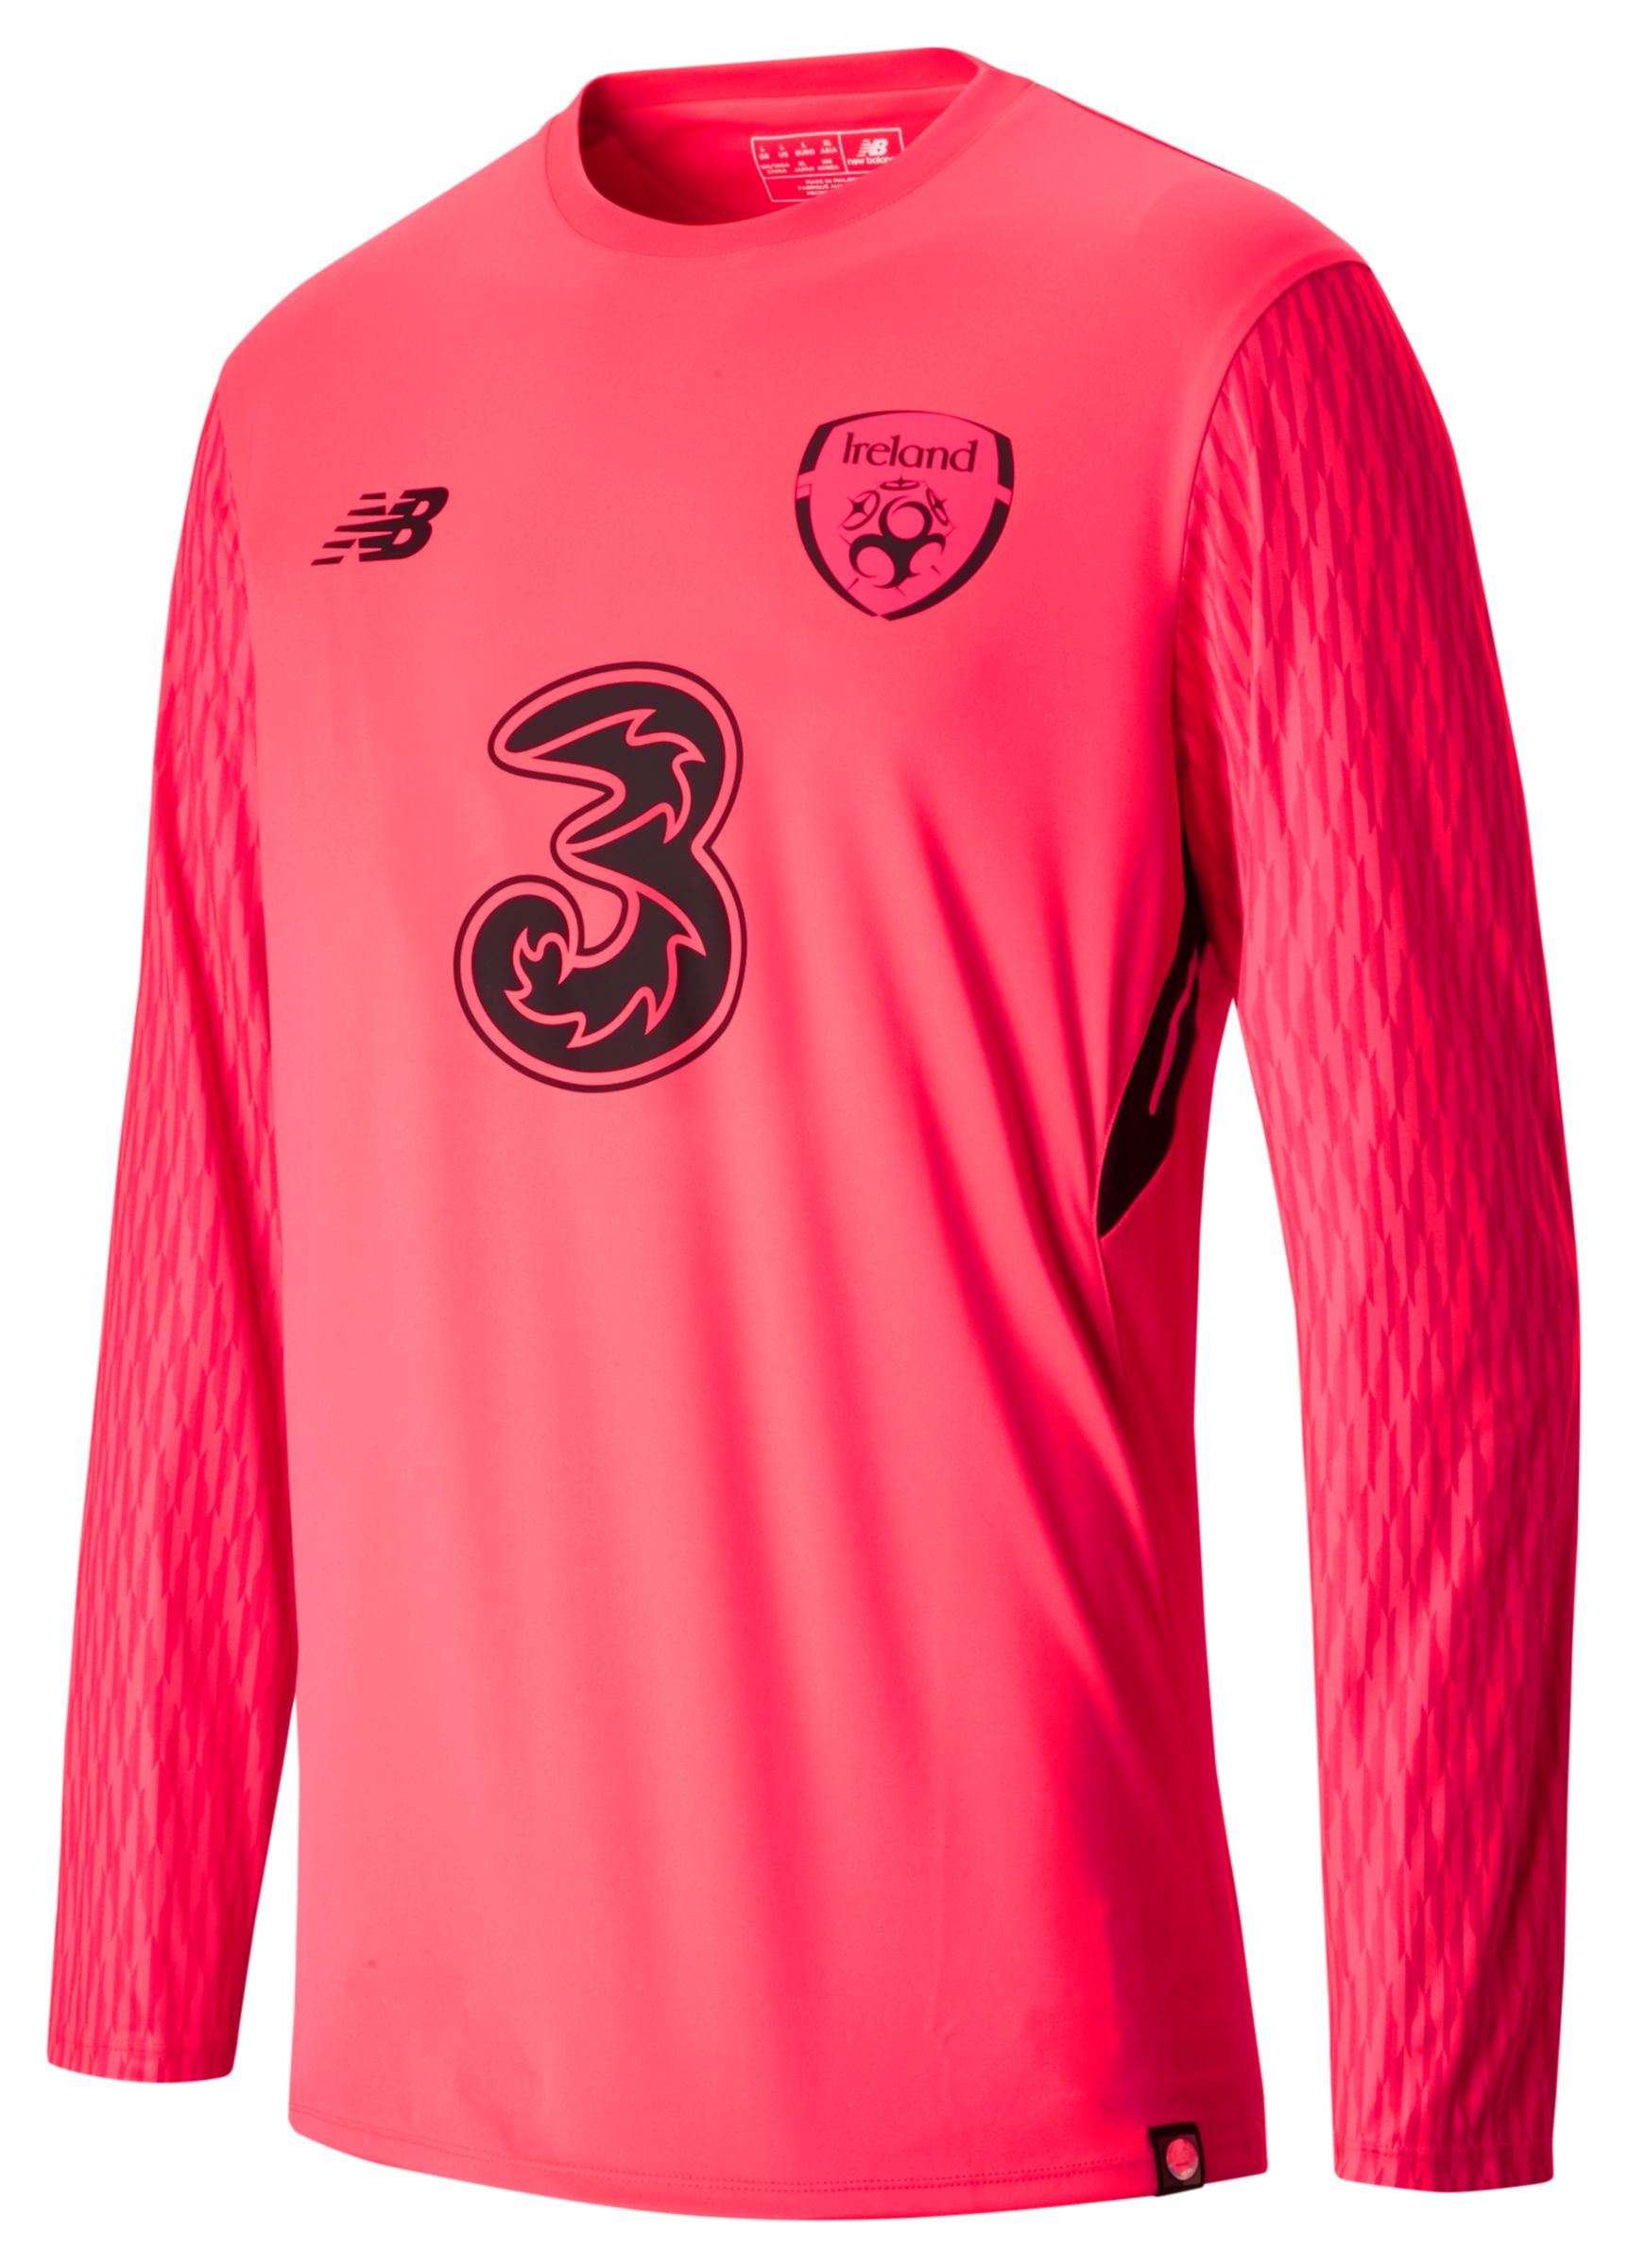 NB FAI Home GK LS Jersey, Bright Cherry